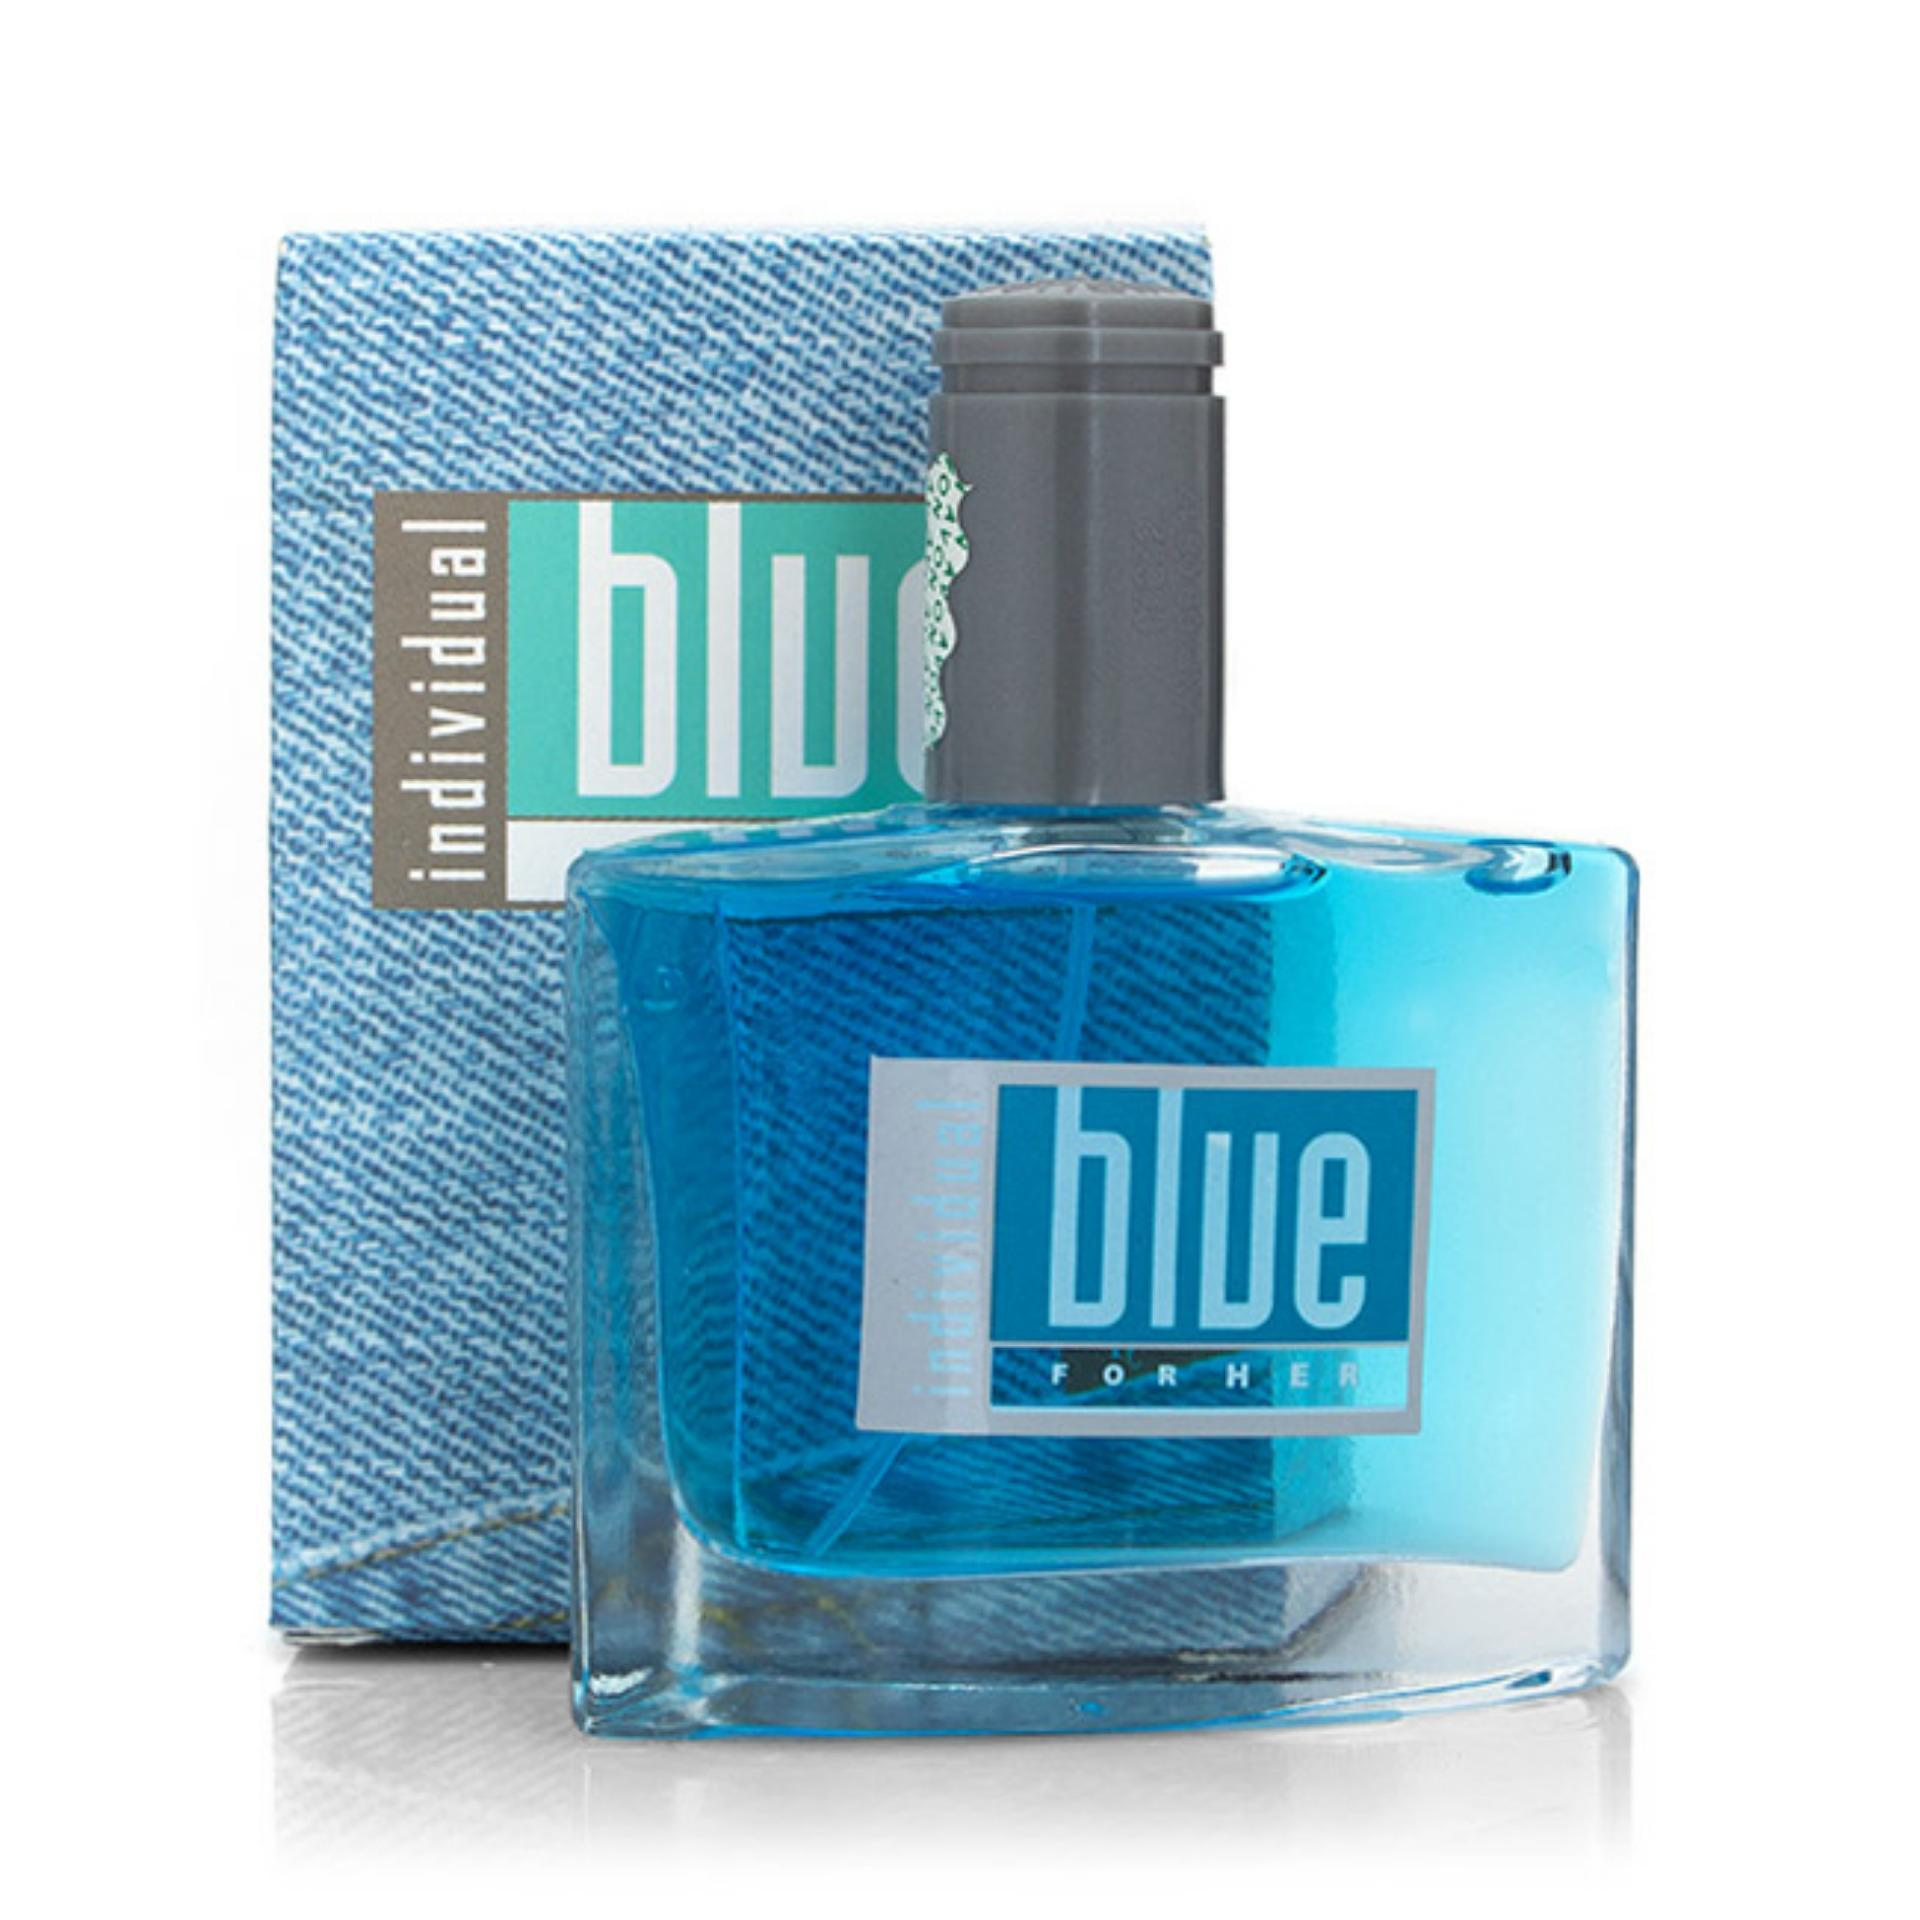 Nước hoa nam Avon Blue For Her 50ml - Thanh Loan